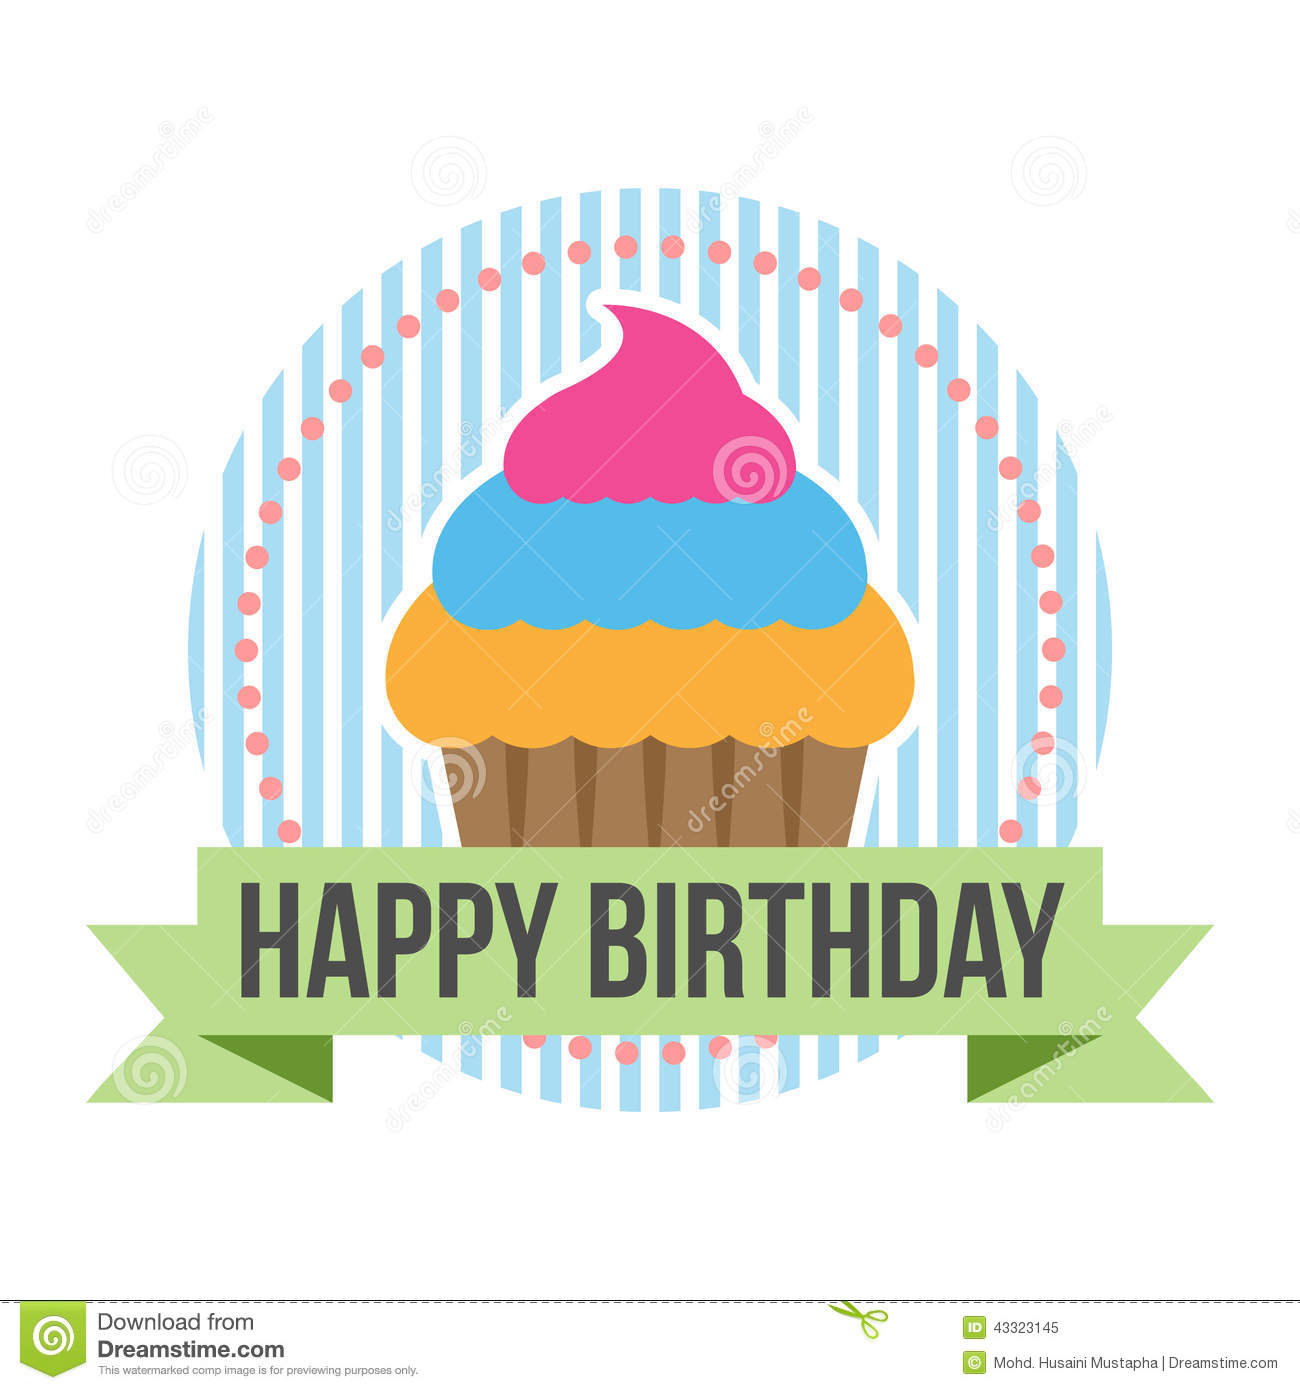 happy birthday tag images ; happy-birthday-round-banner-tag-wish-bagde-43323145